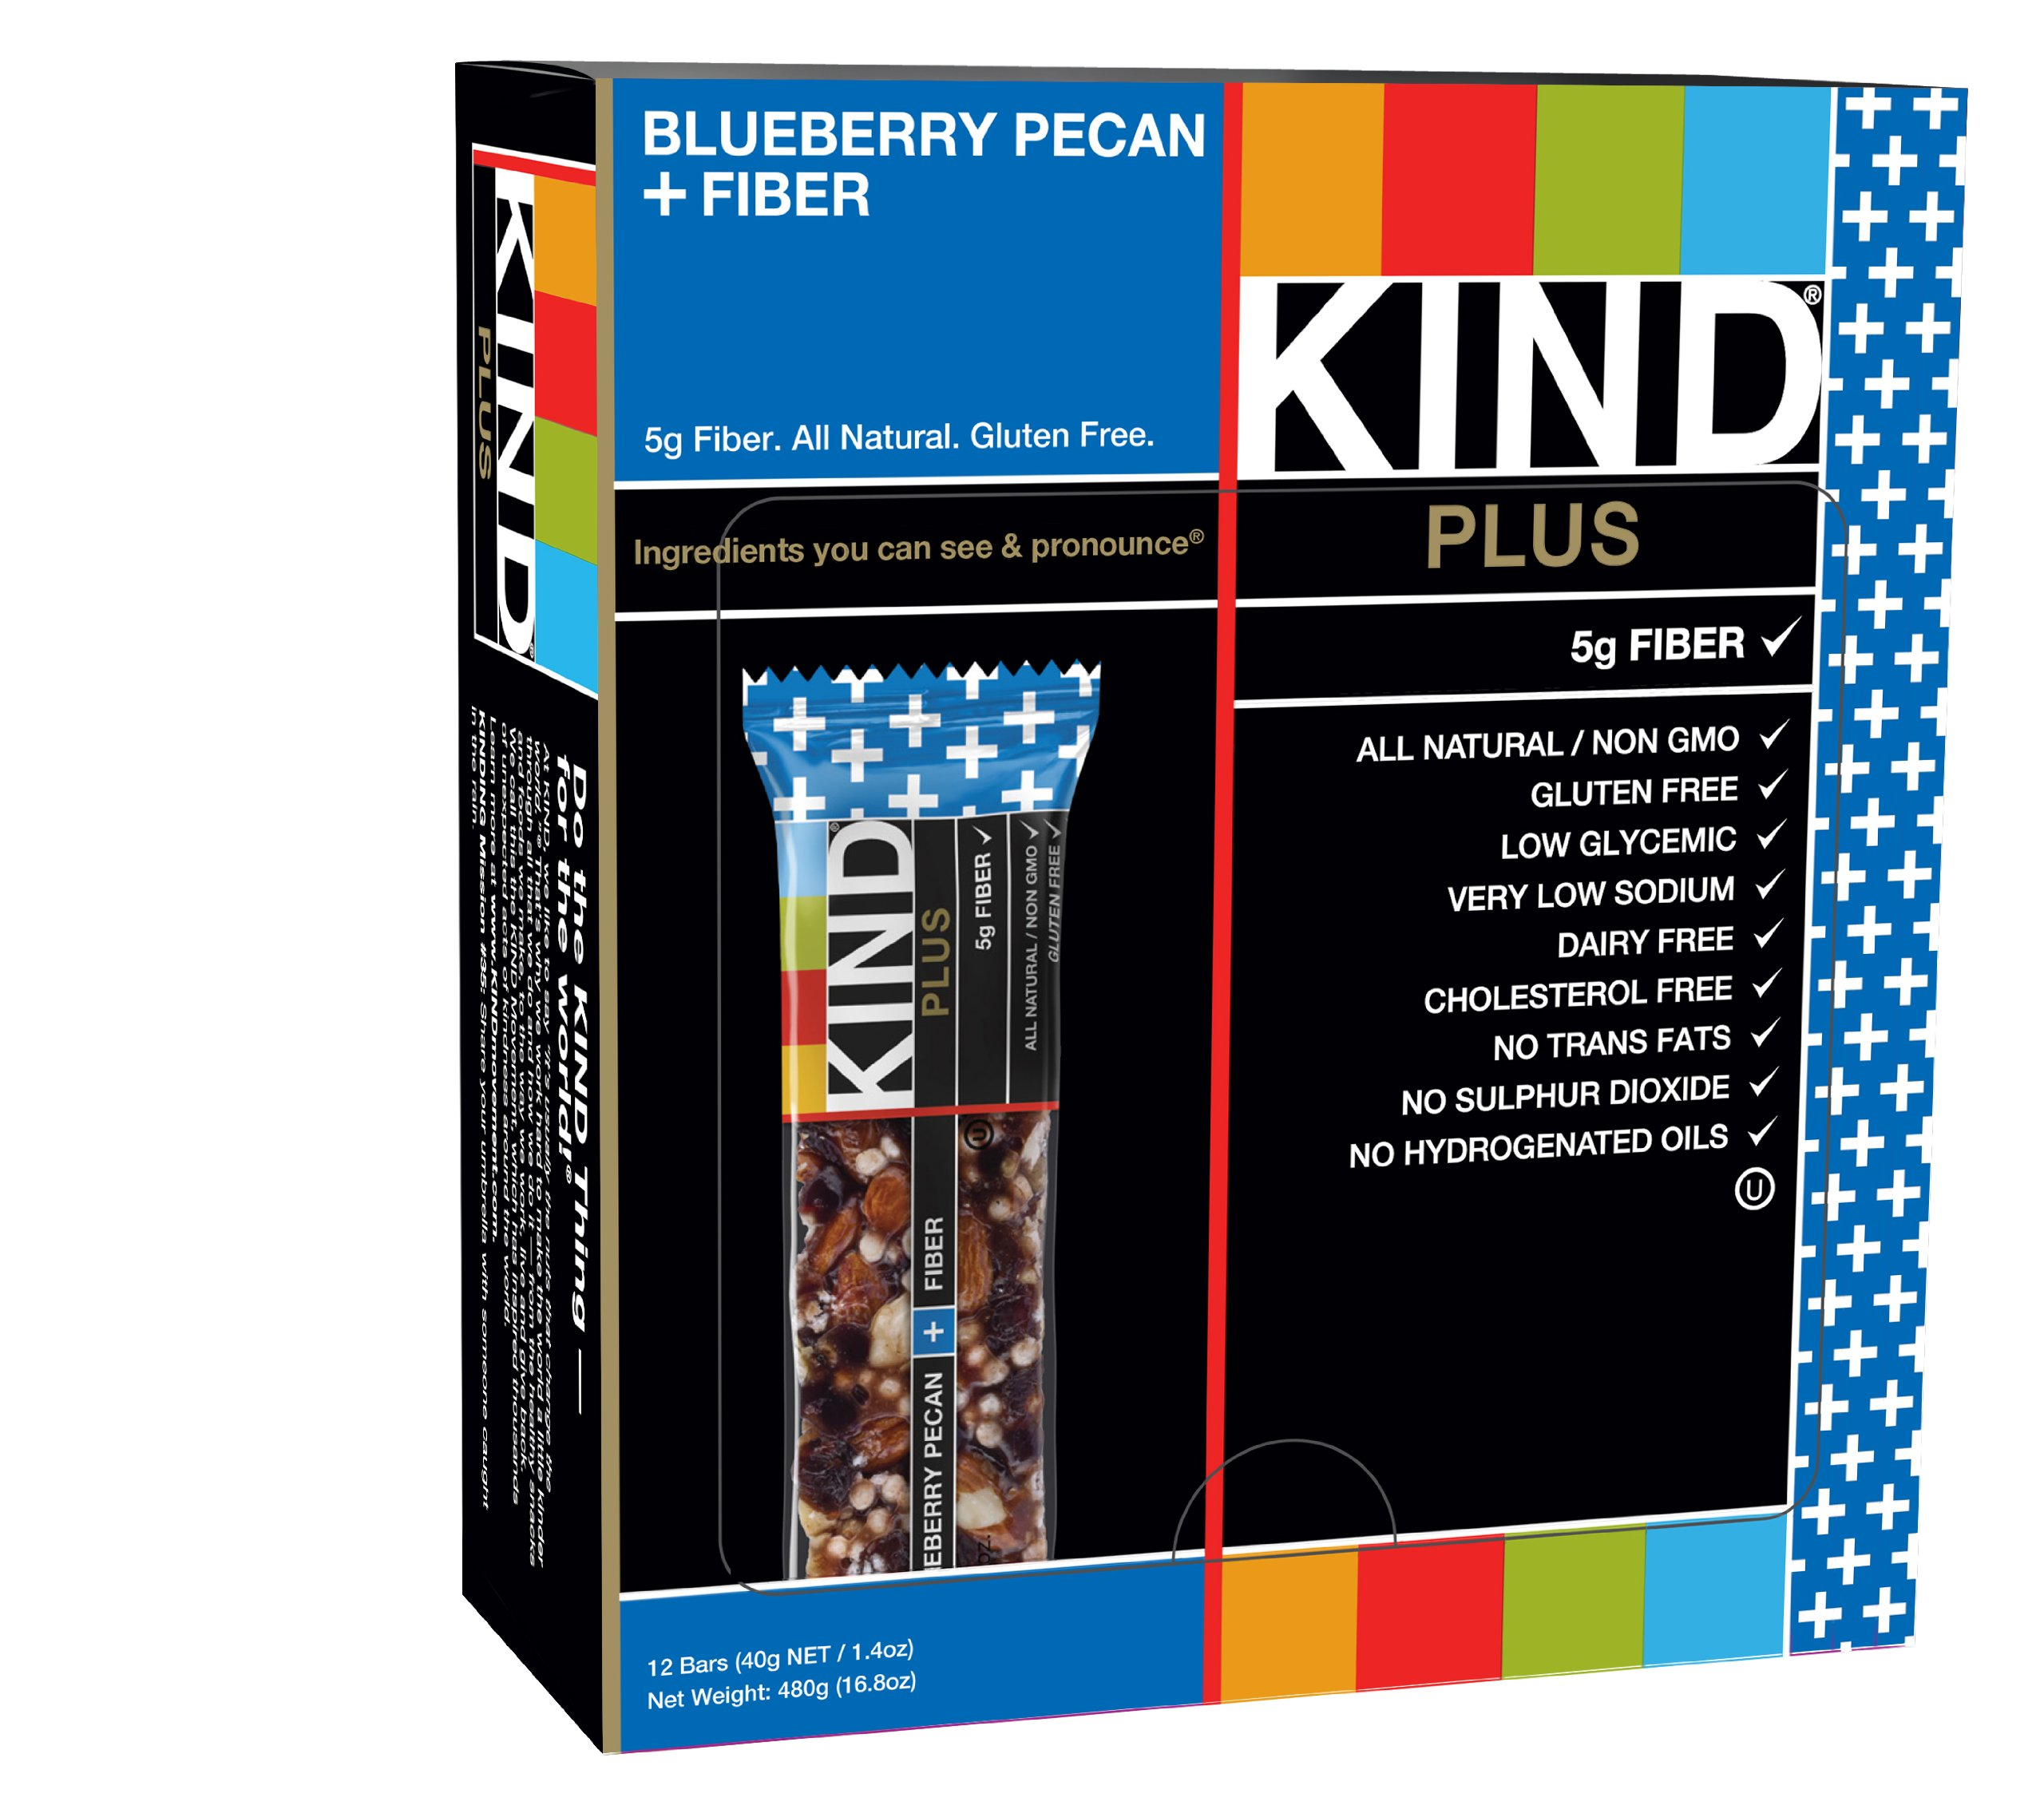 KIND Bars, Blueberry Pecan + Fiber Bars, Gluten Free, 1.4 Ounce Bars, 12 Count